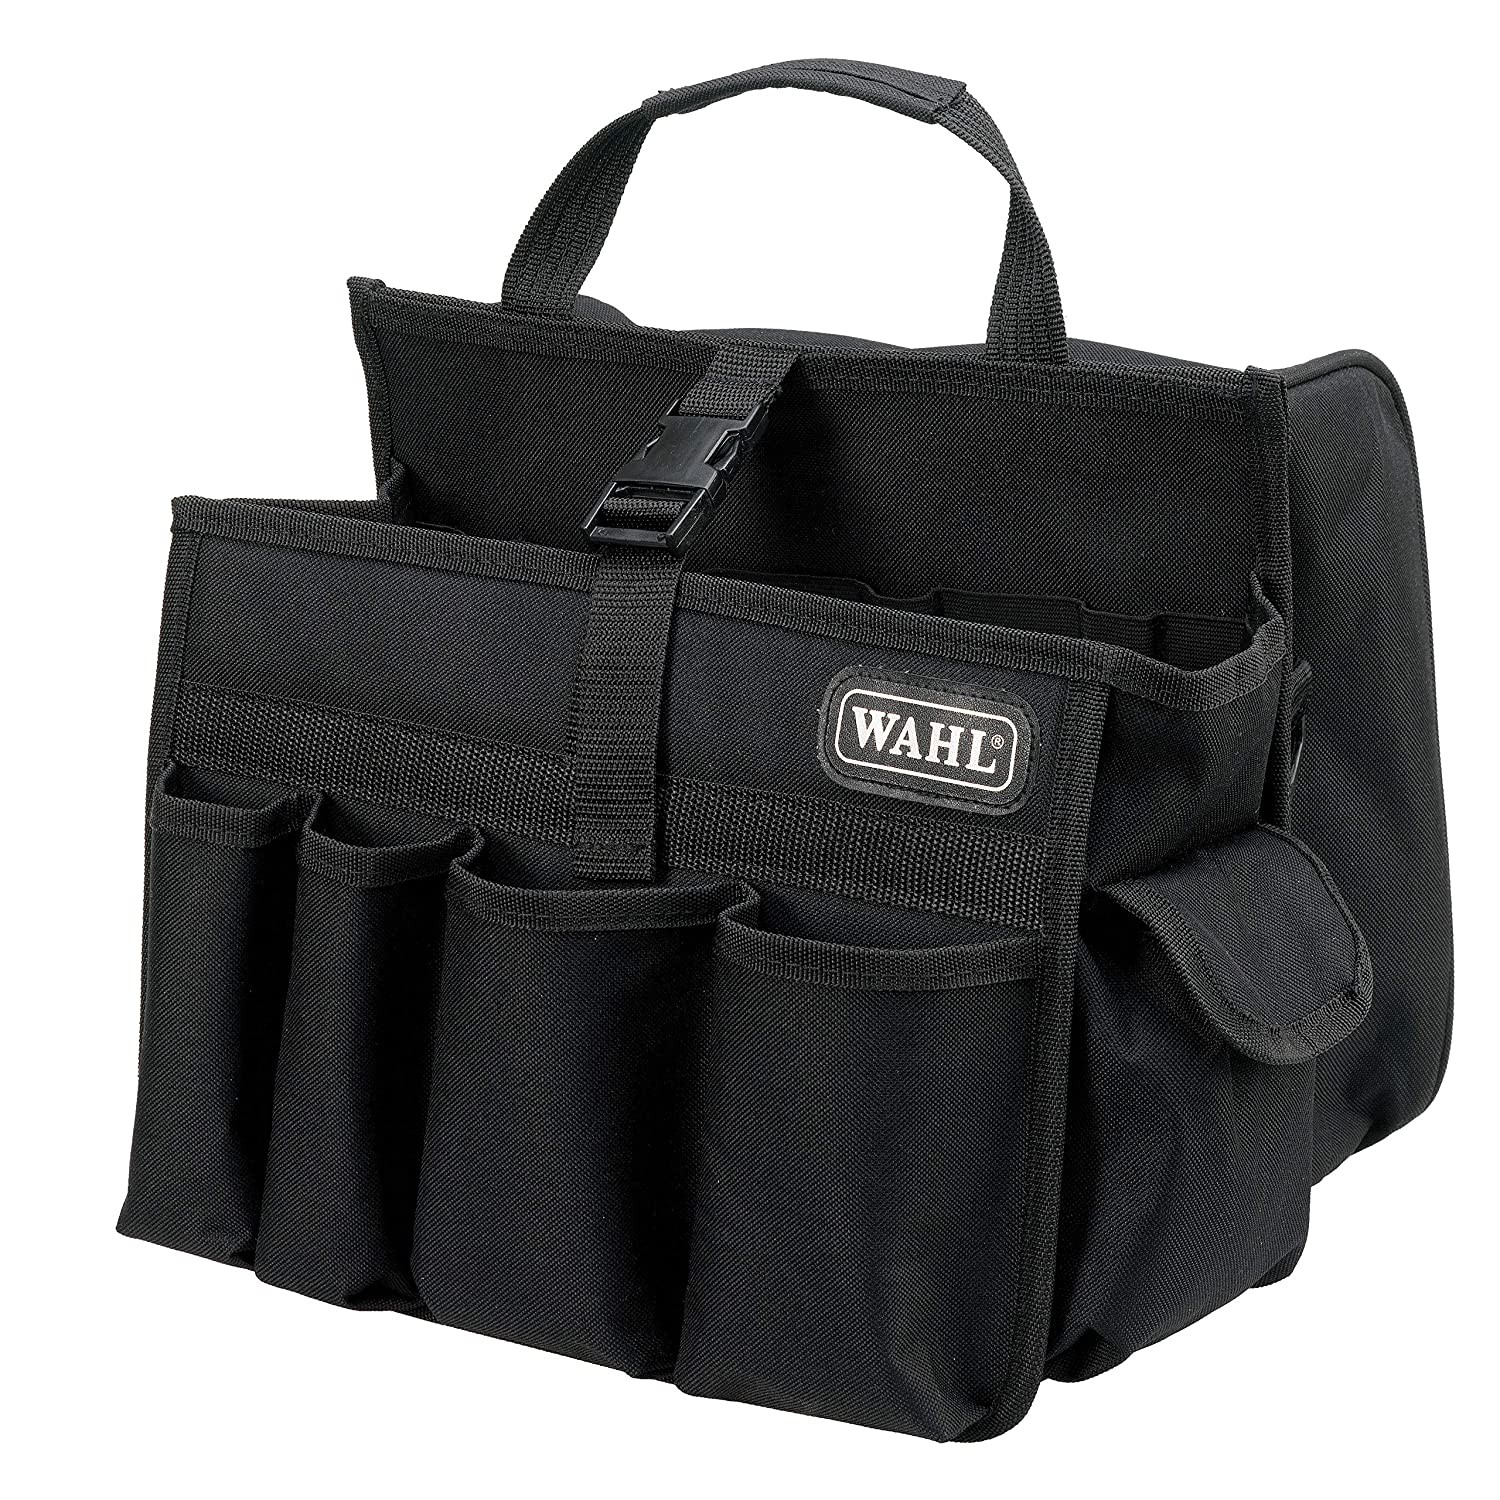 Wahl Tool Carry Hairdressing Equipment Bag - Black ZX569